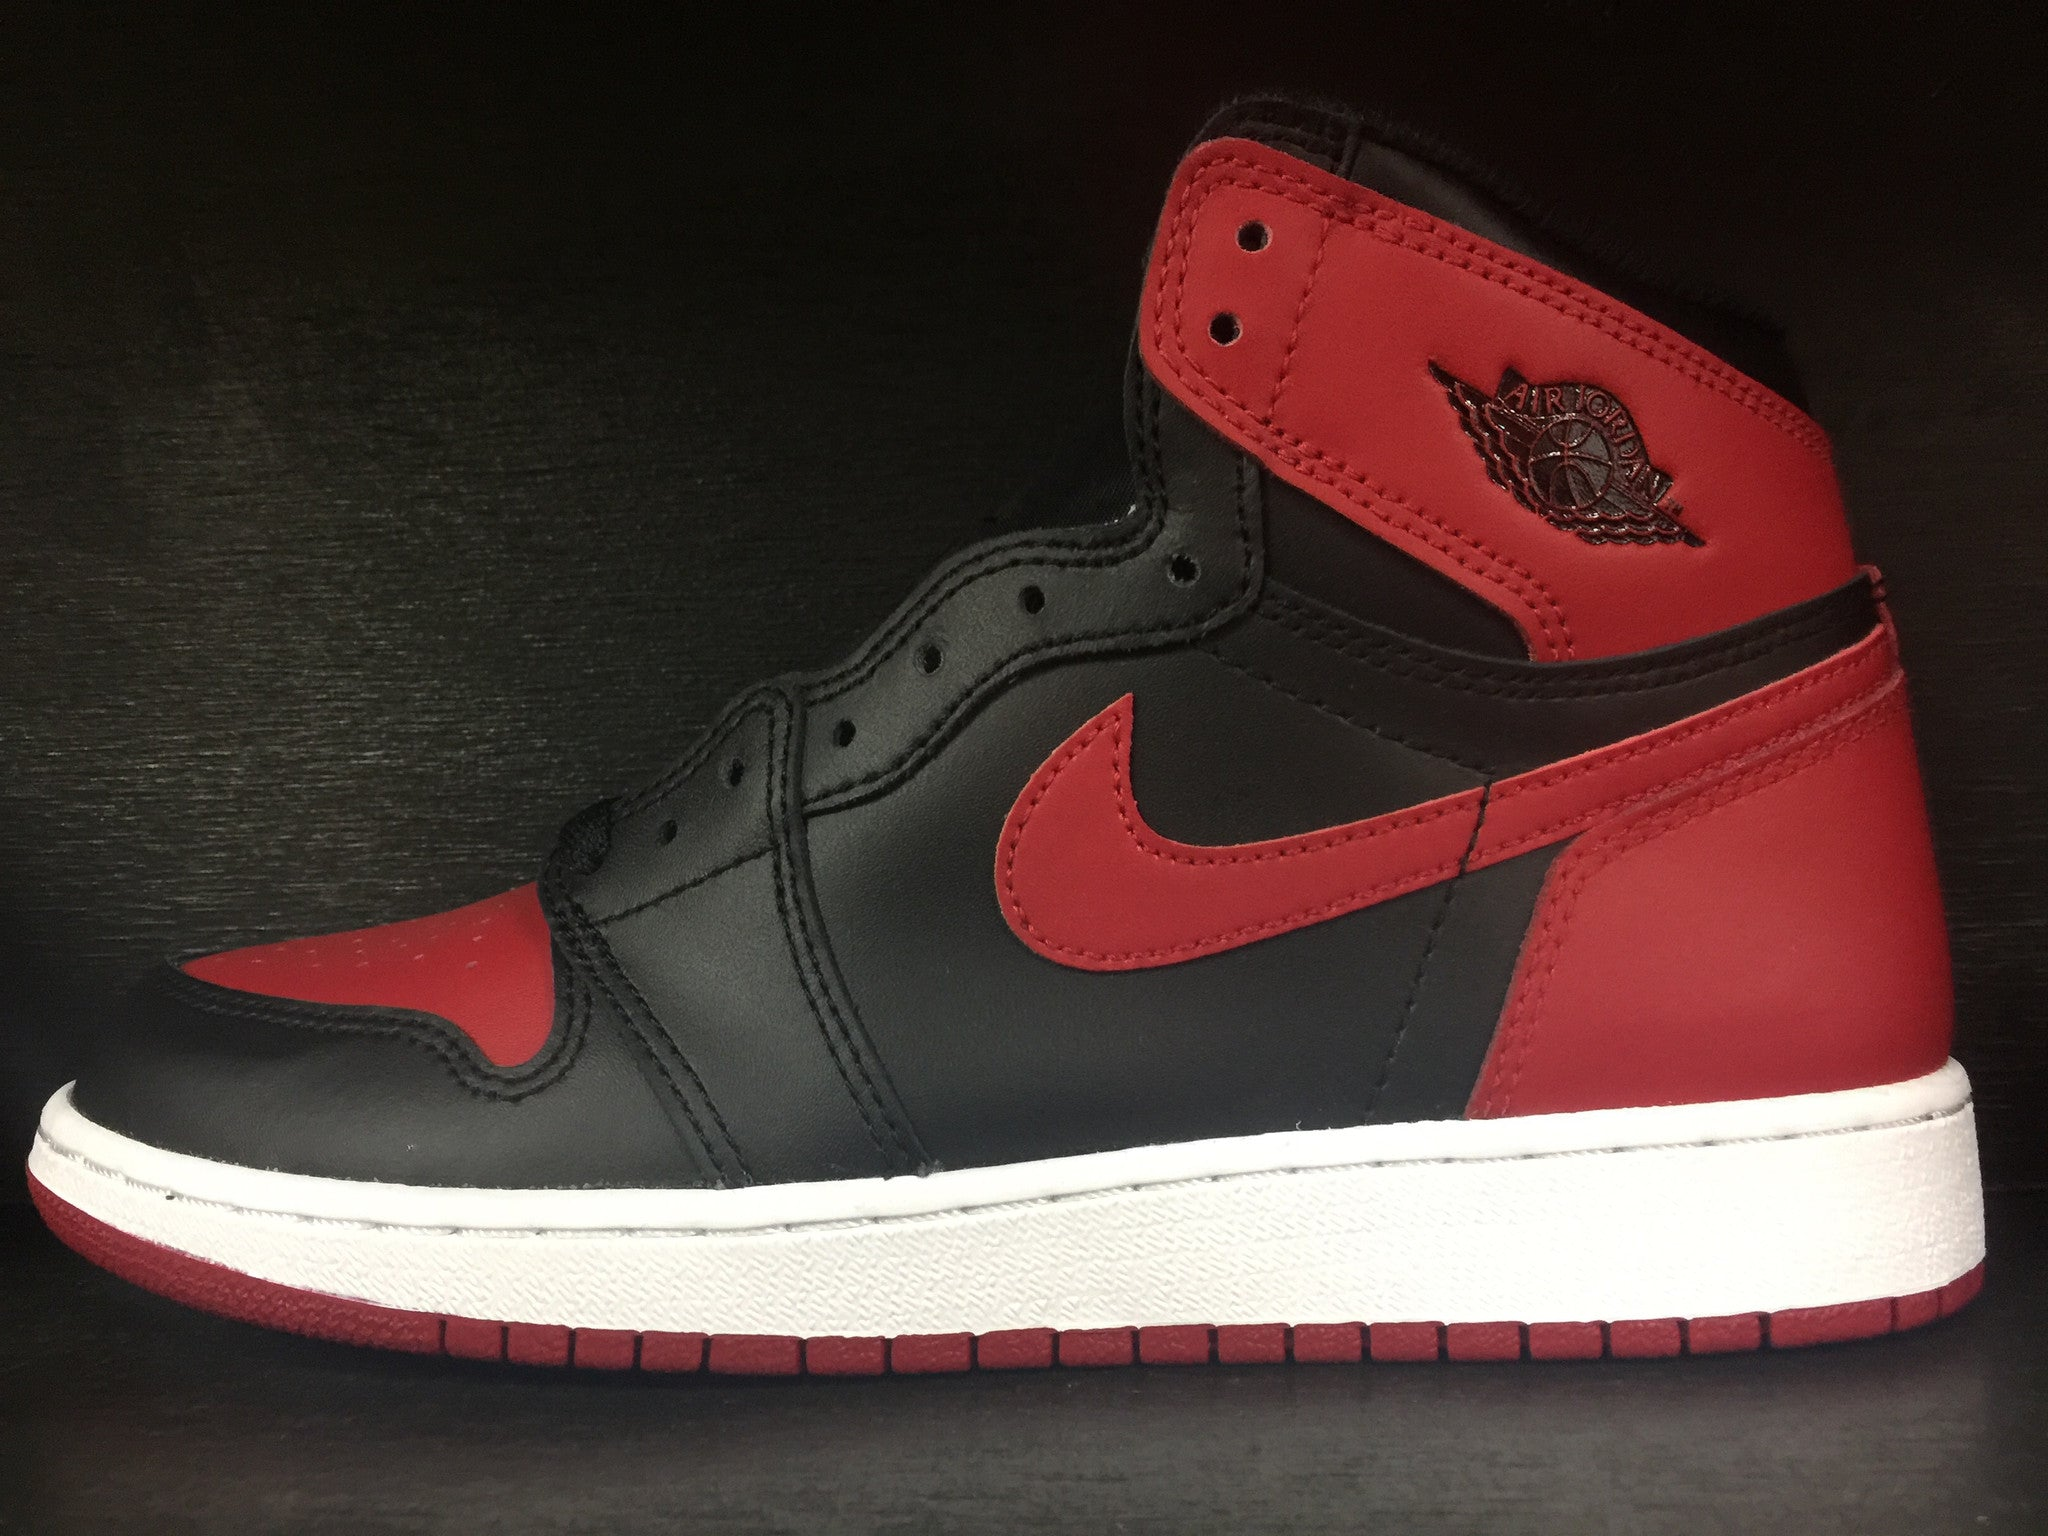 Air Jordan 1 Retro High OG 'Banned' GS